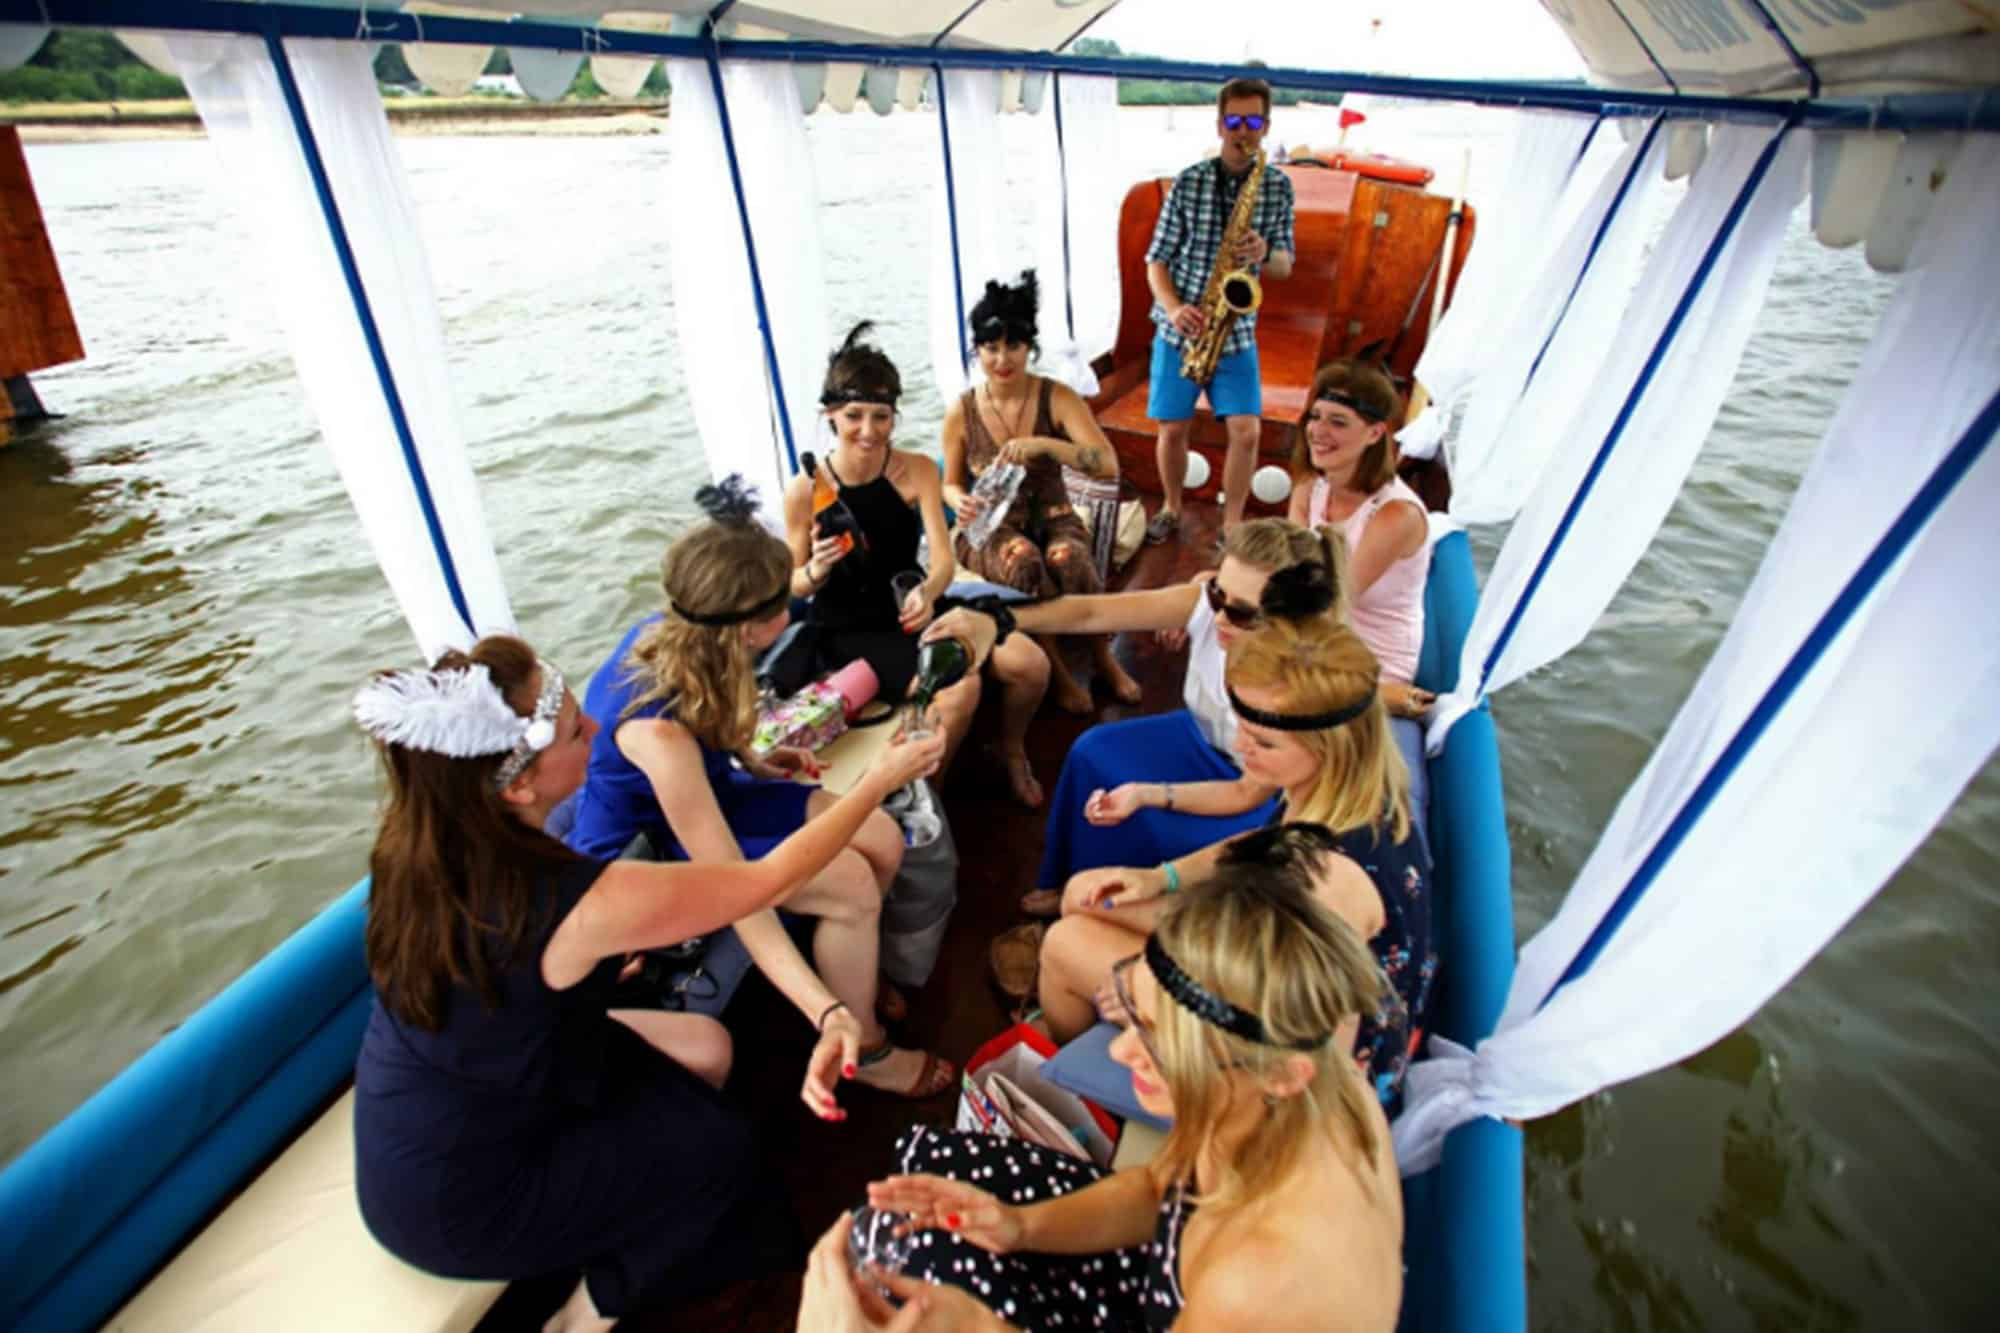 Boat Cruise is an awesome activity for bachelor party